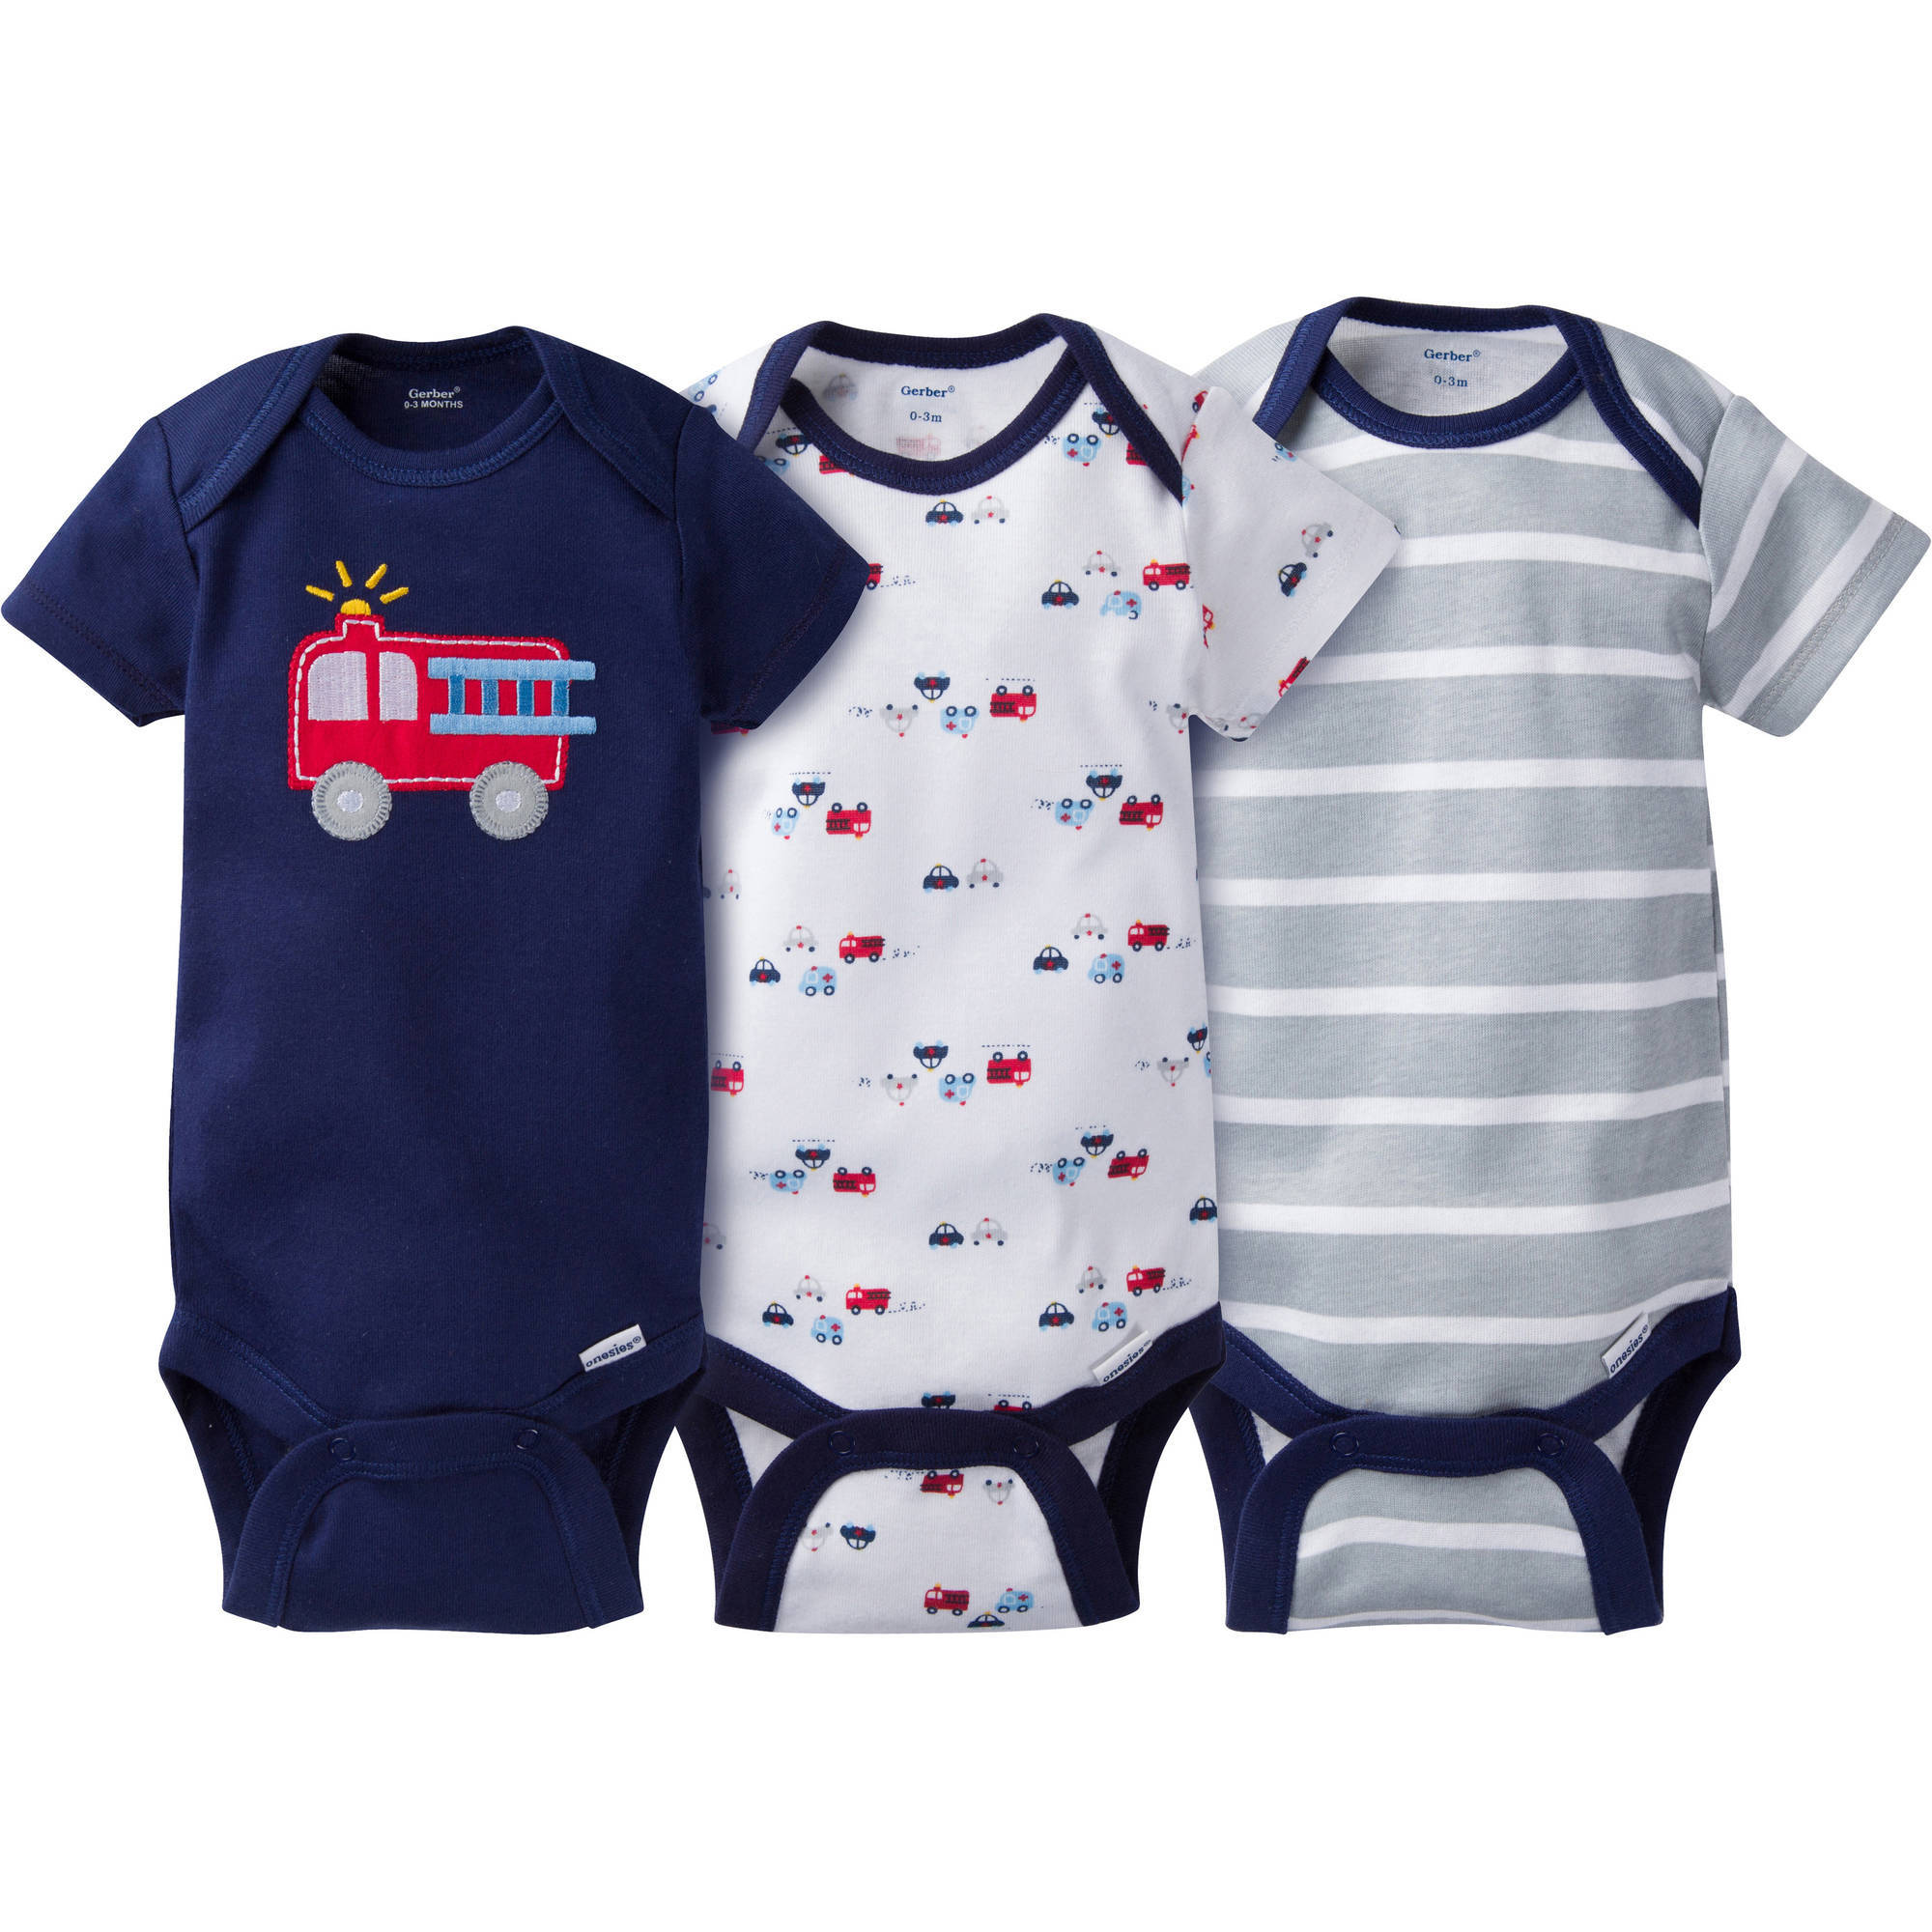 Gerber Newborn Baby Boy Onesies Bodysuits Assorted, 3-Pack